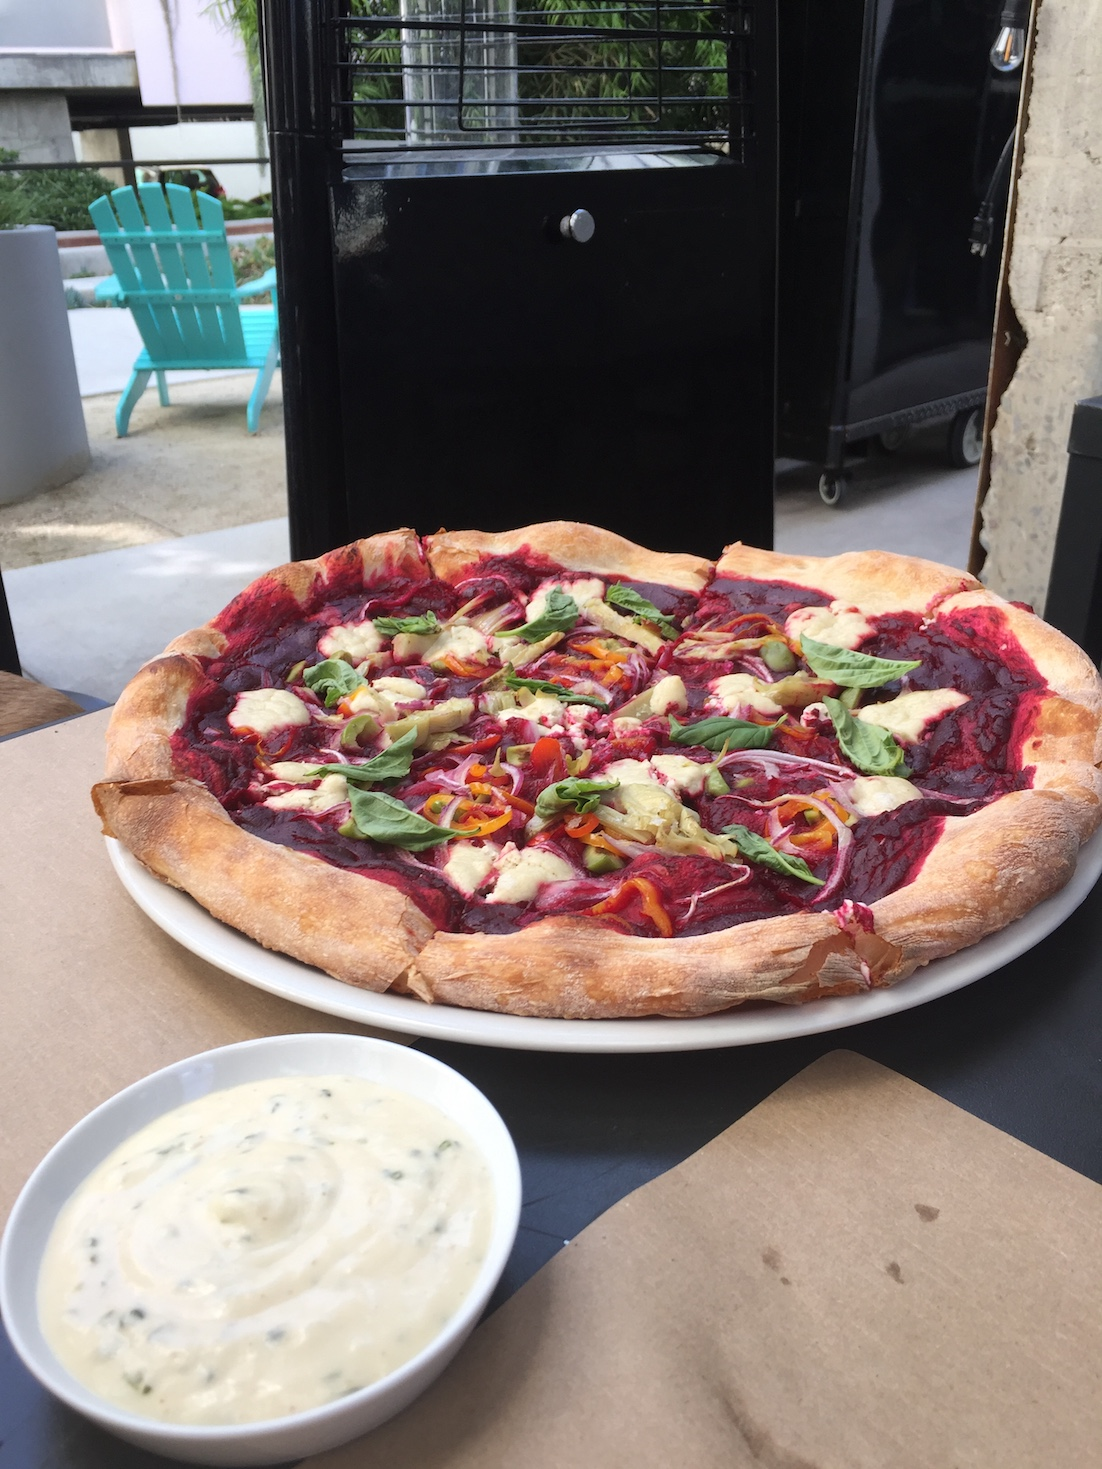 Vegan pizza in San Diego